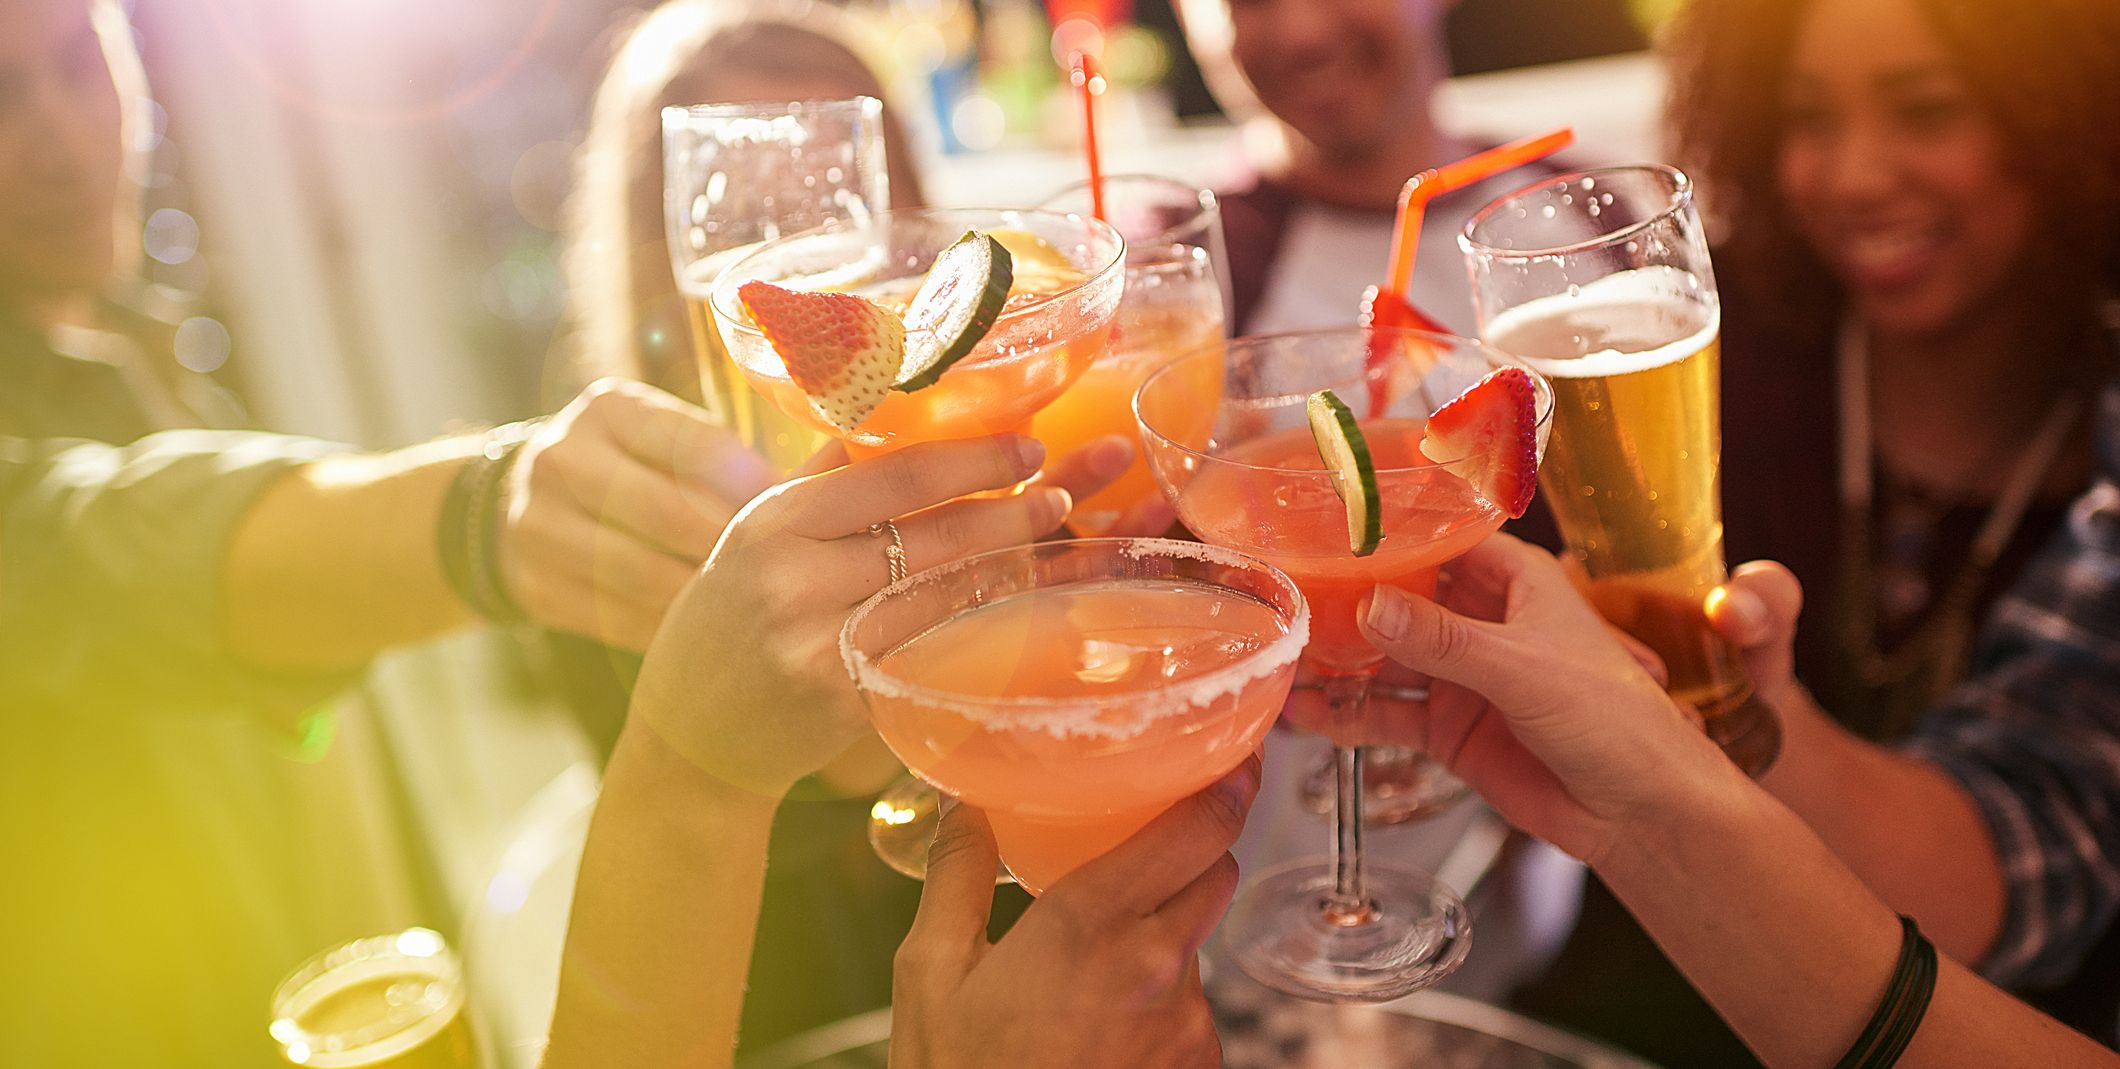 10 Low-Calorie Alcoholic Drinks to Order if You're Trying to Lose Weight